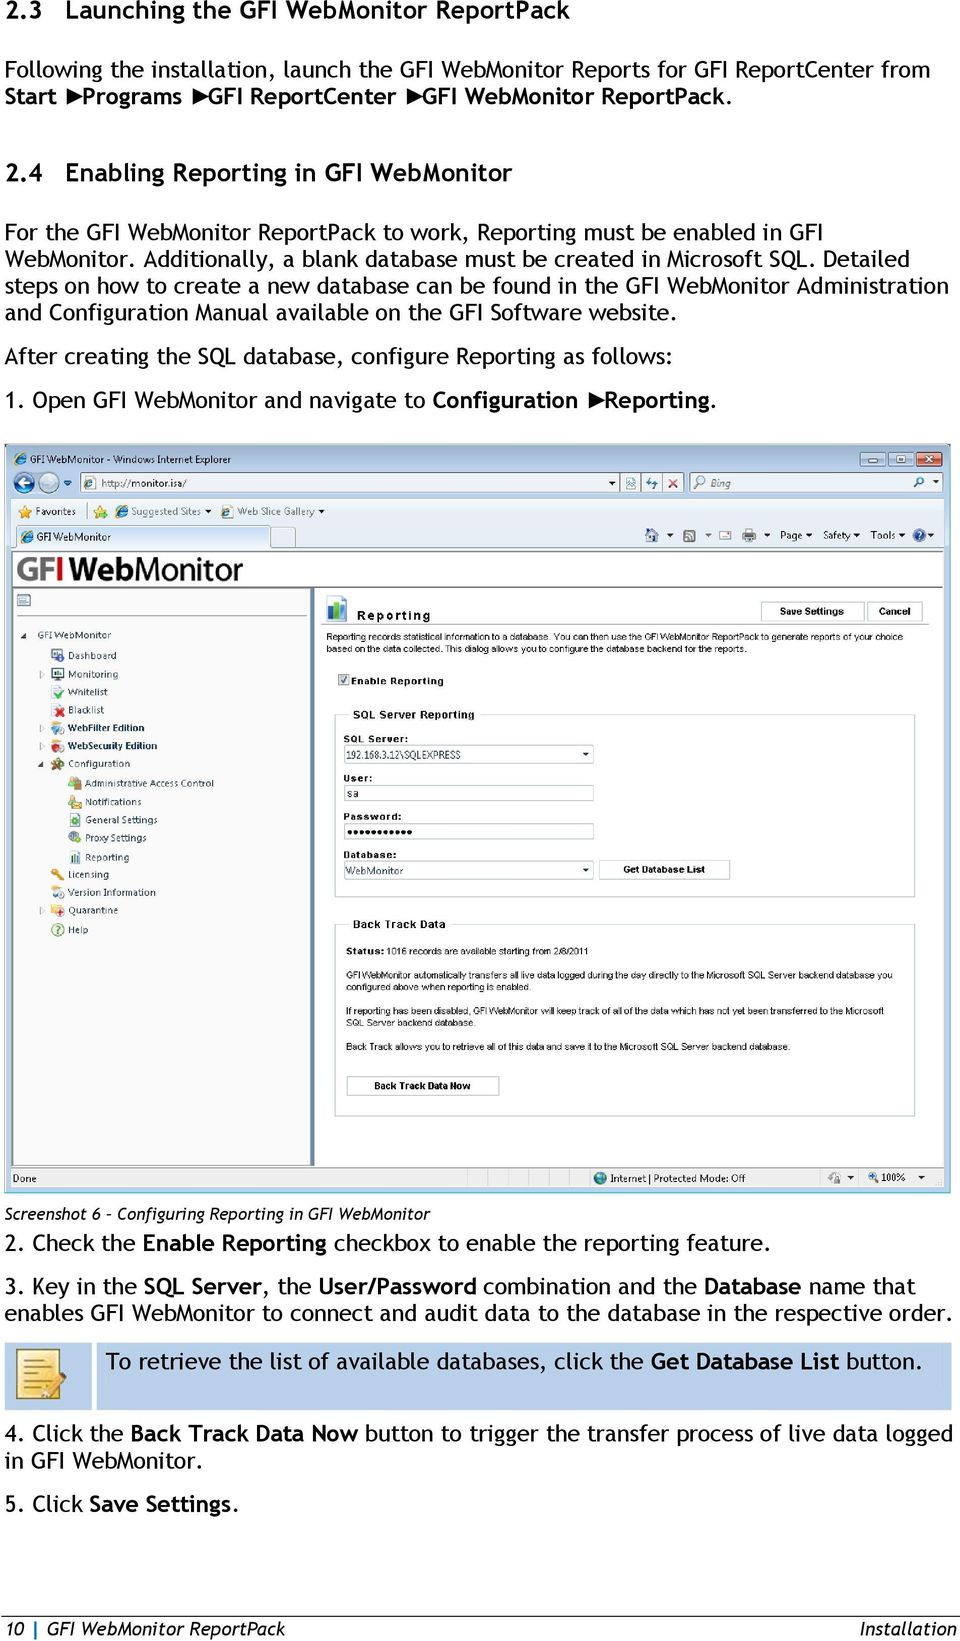 Detailed steps on how to create a new database can be found in the GFI WebMonitor Administration and Configuration Manual available on the GFI Software website.